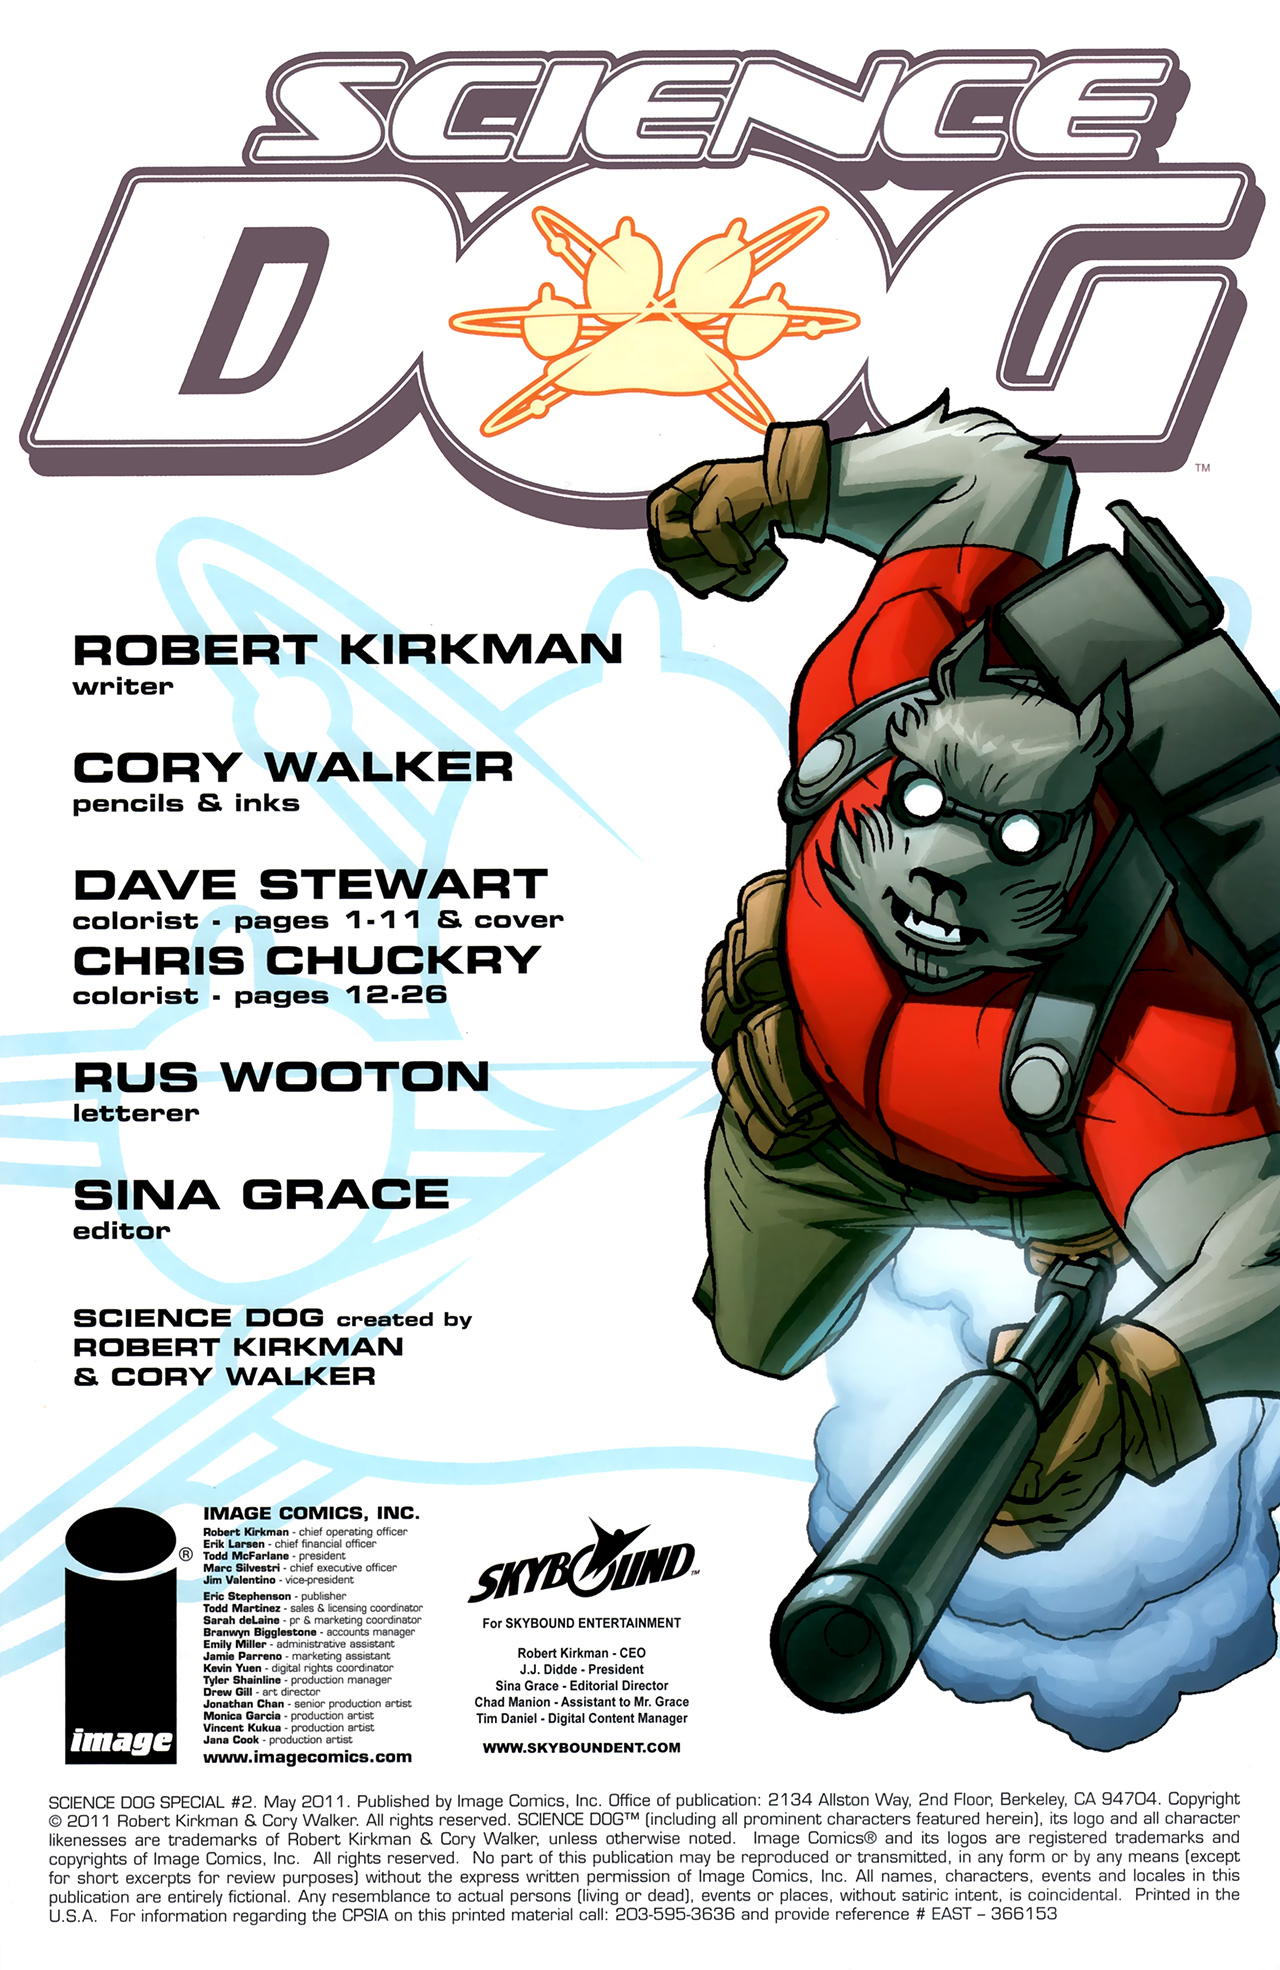 Read online Science Dog Special comic -  Issue #2 - 2